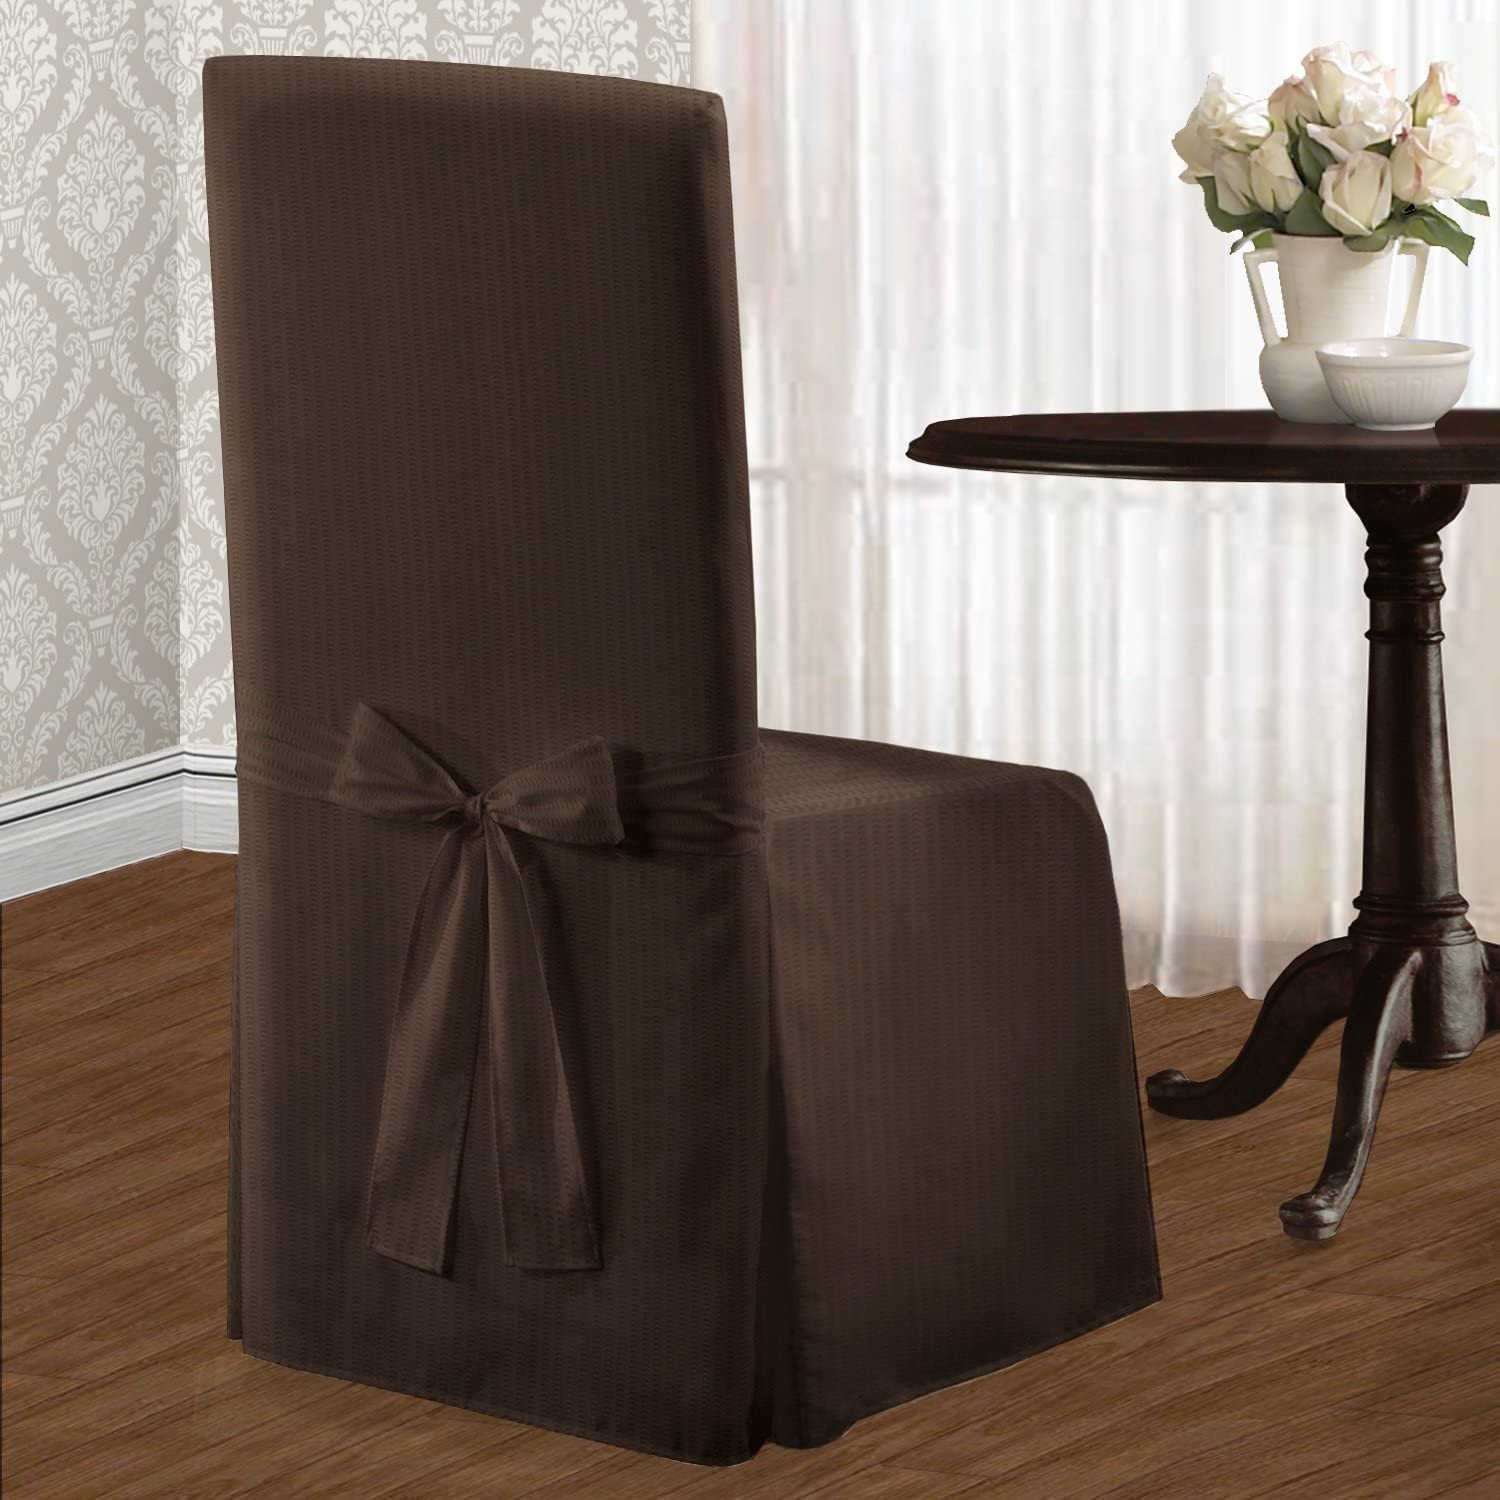 United Curtain Metro Dining Room Chair Cover, 19 by 18 by 39-Inch, Chocolate